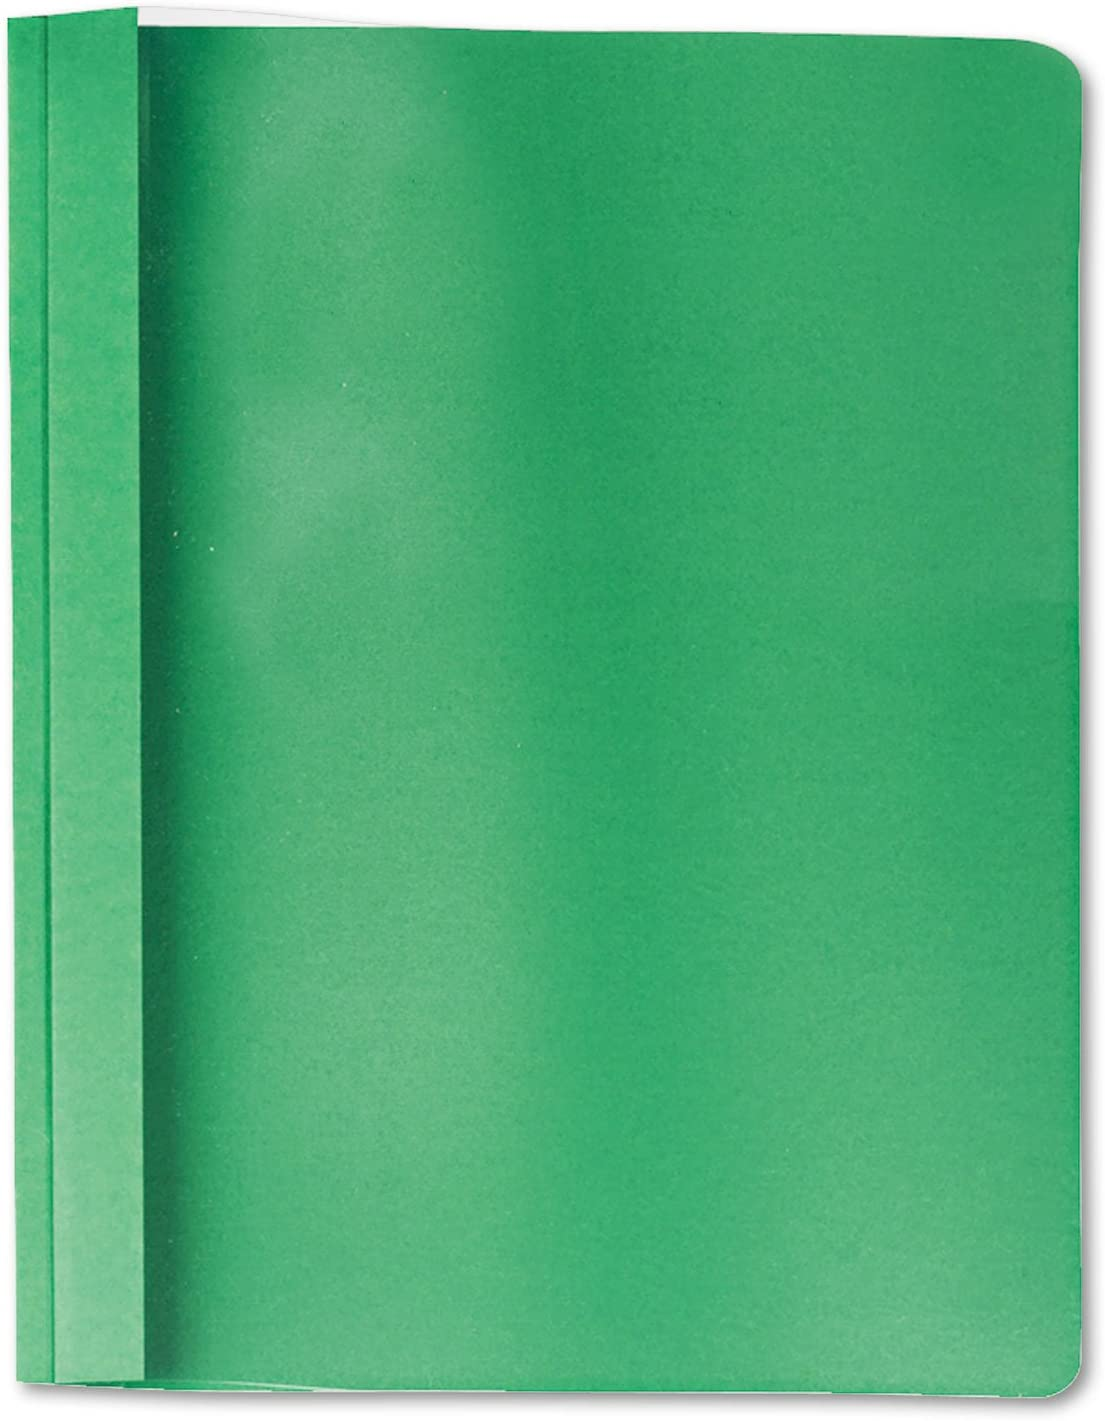 Universal 57124 Clear Front Report Cover Letter Size Tang Fasteners 25//Box Green